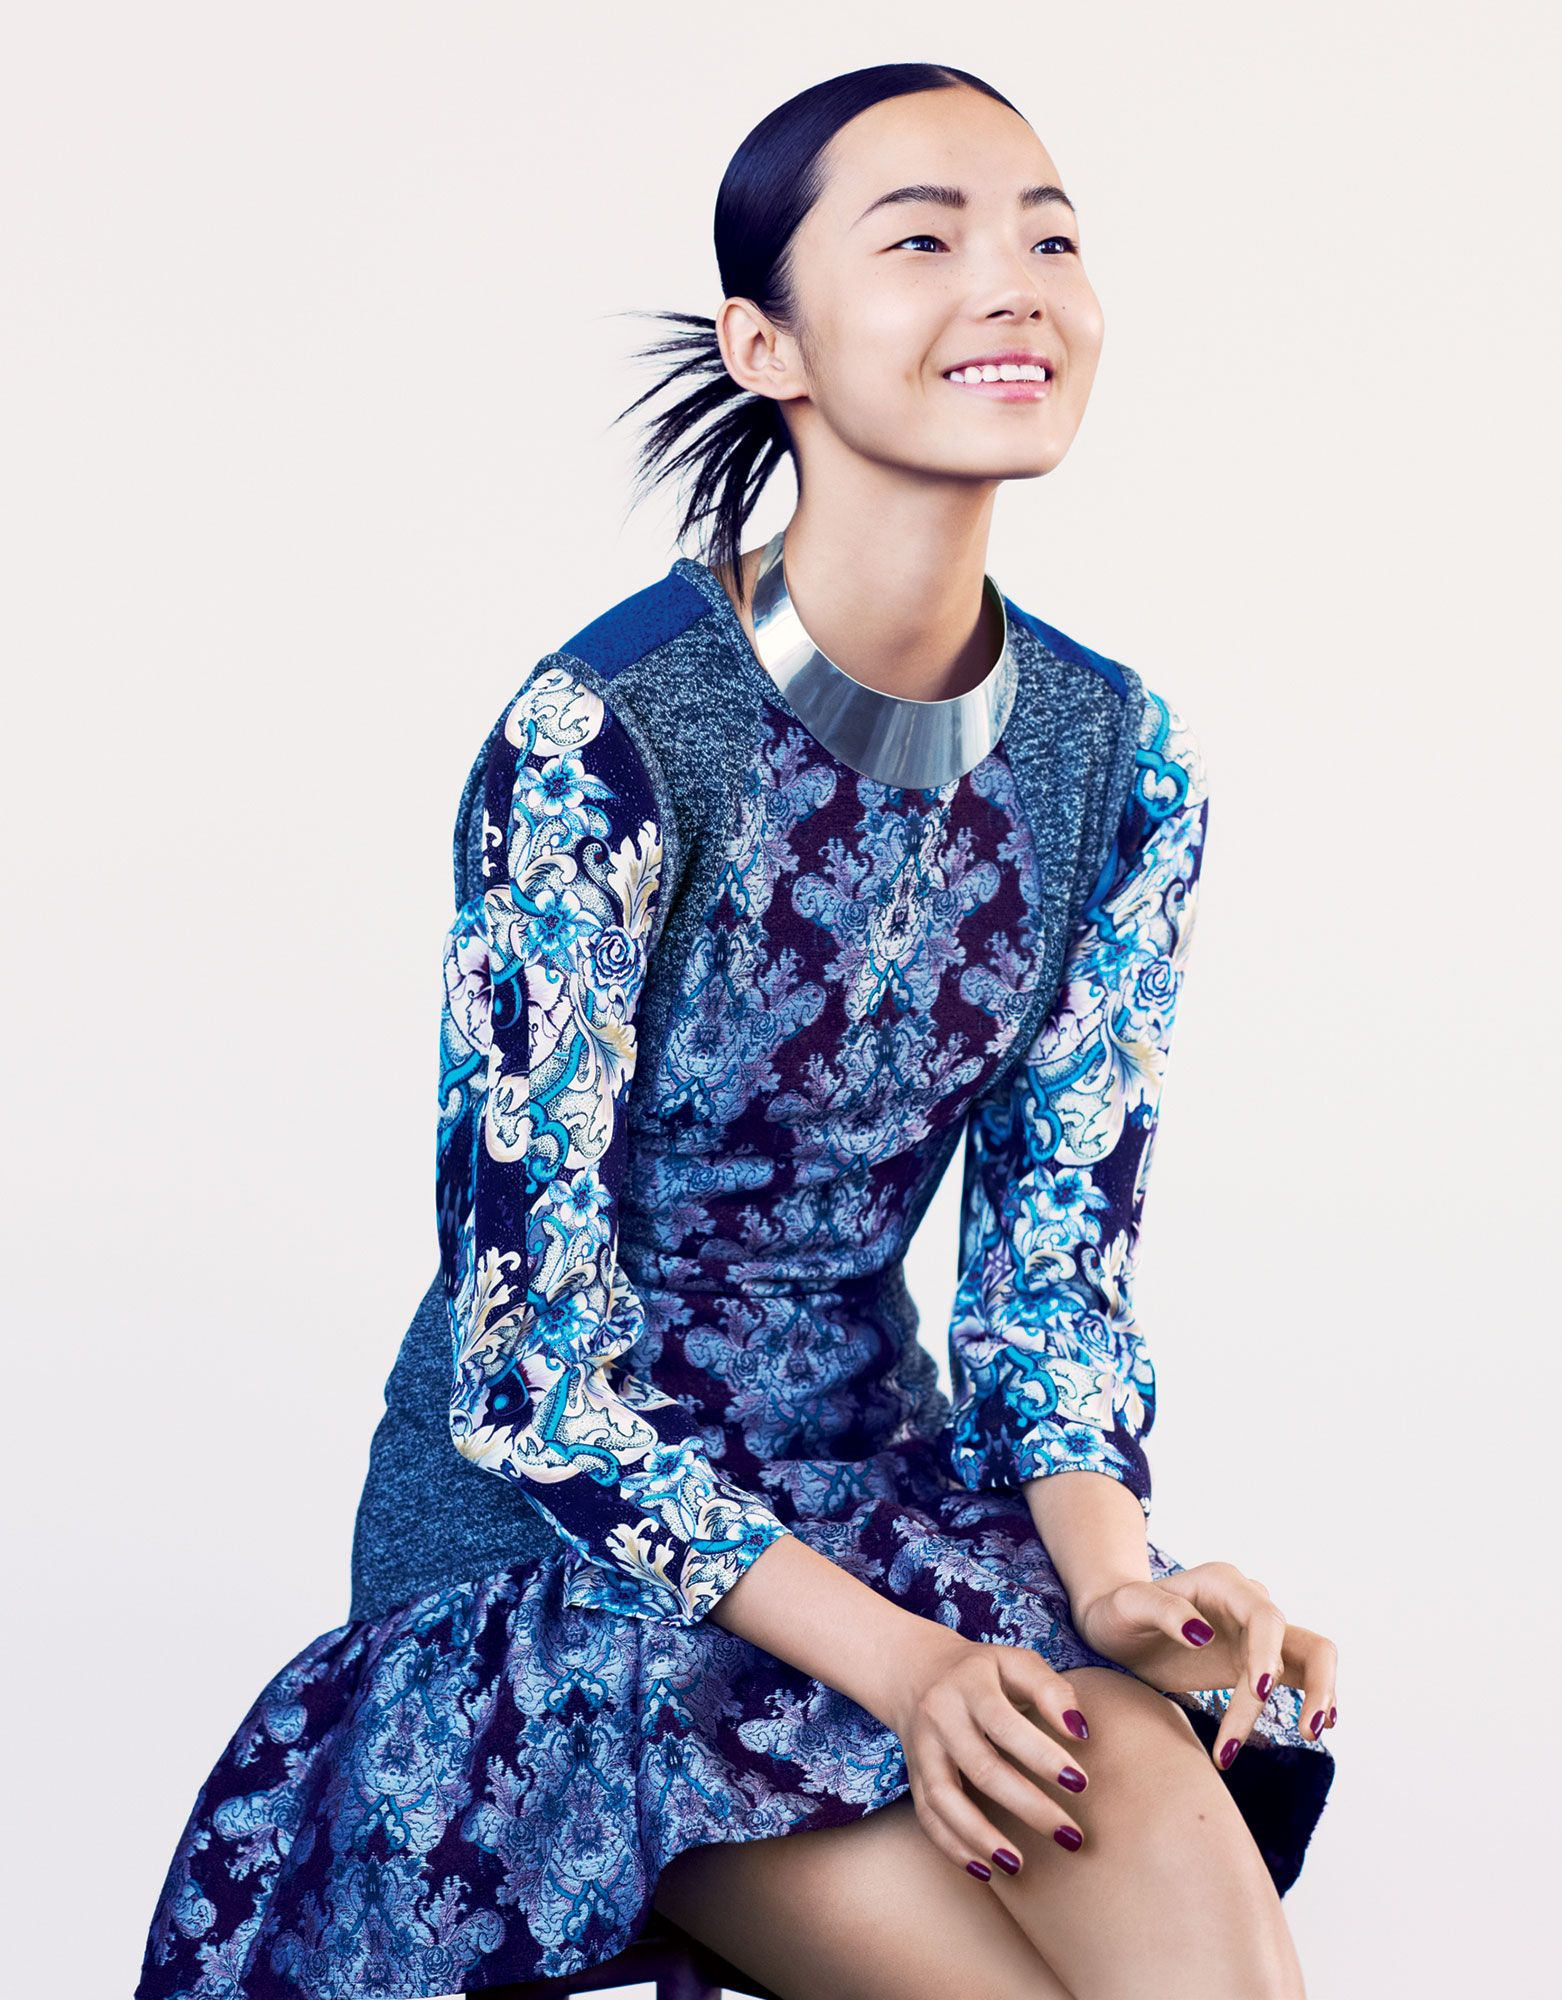 Xiao Wen Ju - Photographed by Hasse Nielsen, Vogue, December 2012 (MISS -Pretty, but no - BA)